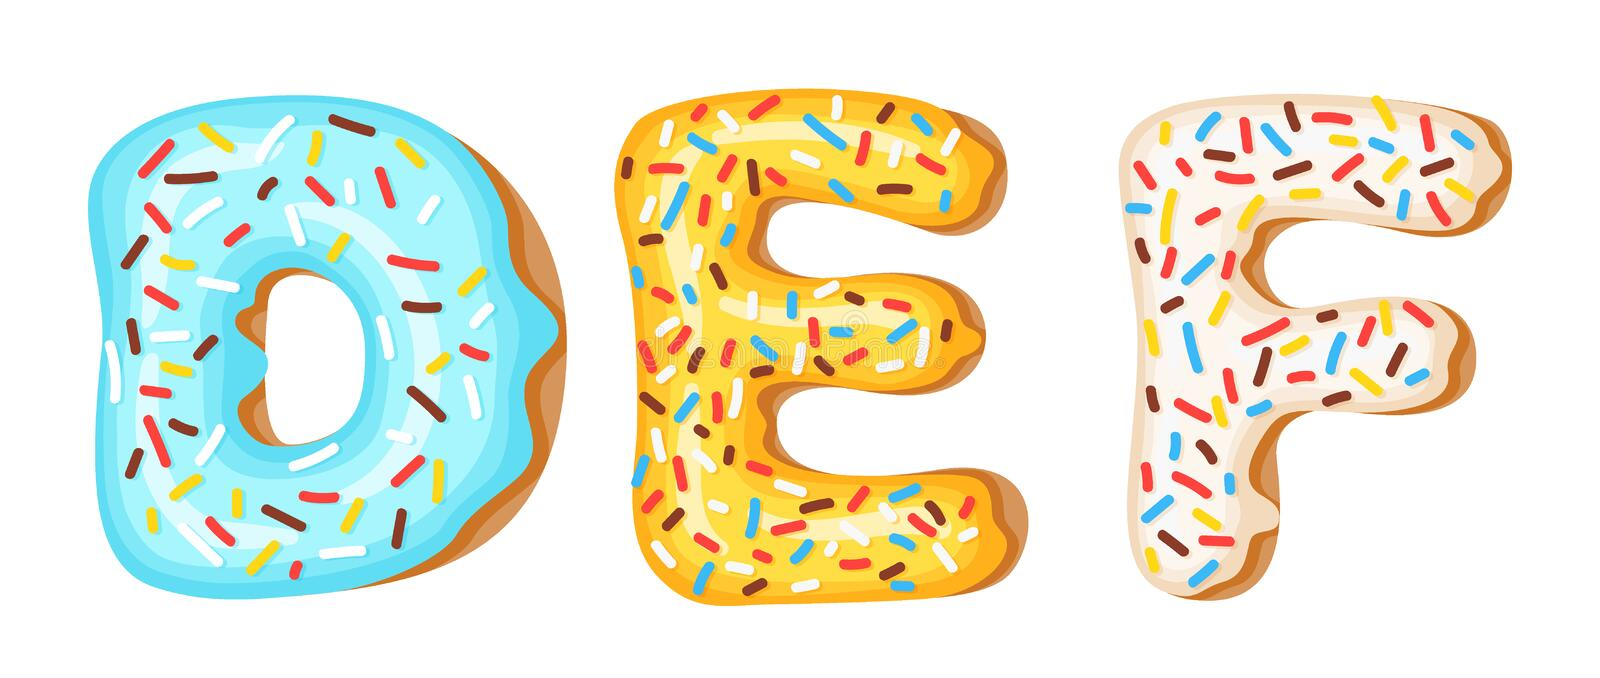 Donut icing upper latters - D, E, F. Font of donuts. Bakery sweet alphabet. Donut alphabet latters A b C isolated on. White background, vector illustration vector illustration